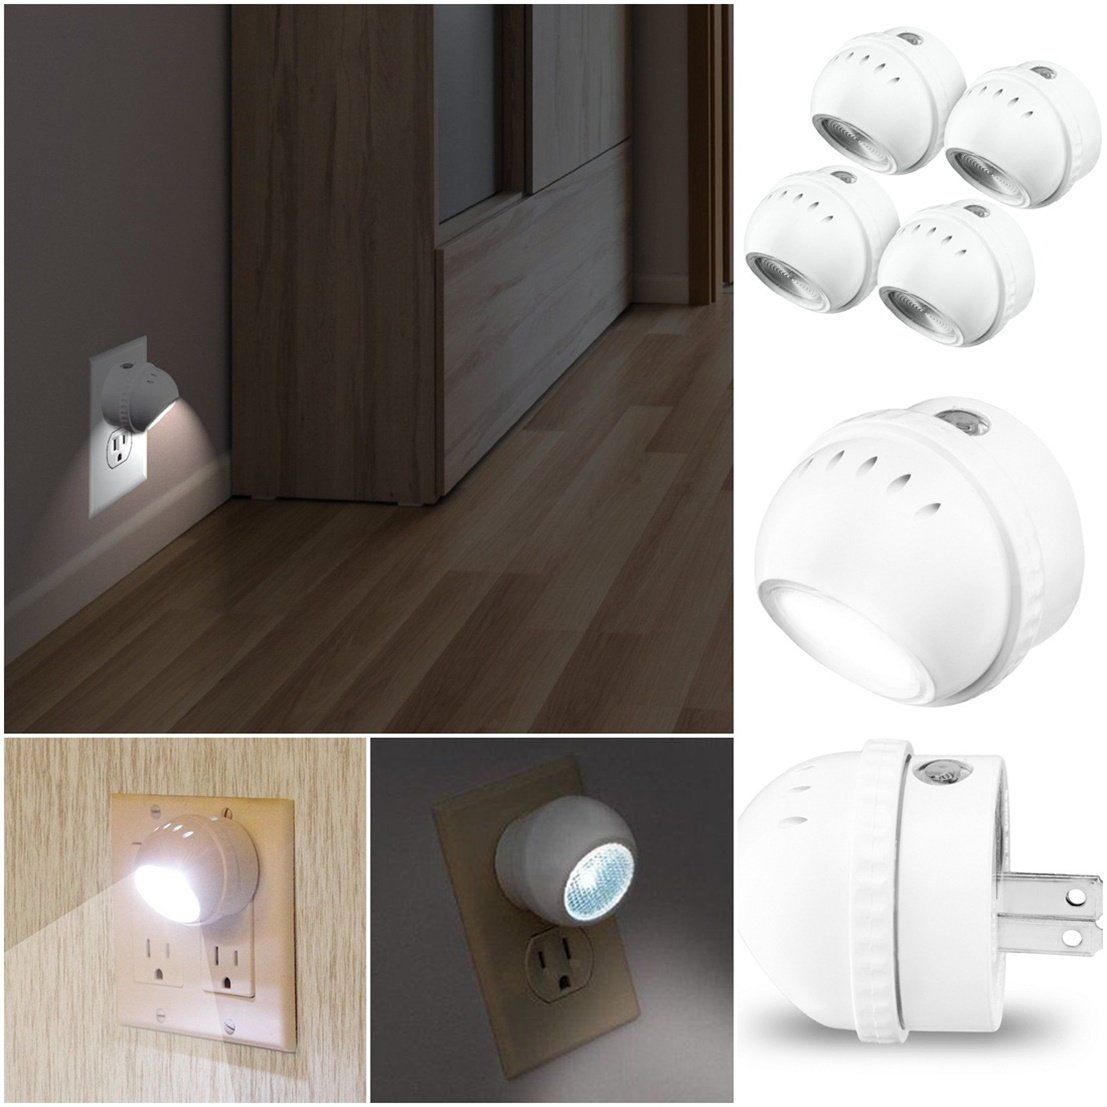 Pack of 4 Matchless Popular LED Nightlight No Bulbs Rotates 360 Degrees Auto Sensor Color White with US Plug